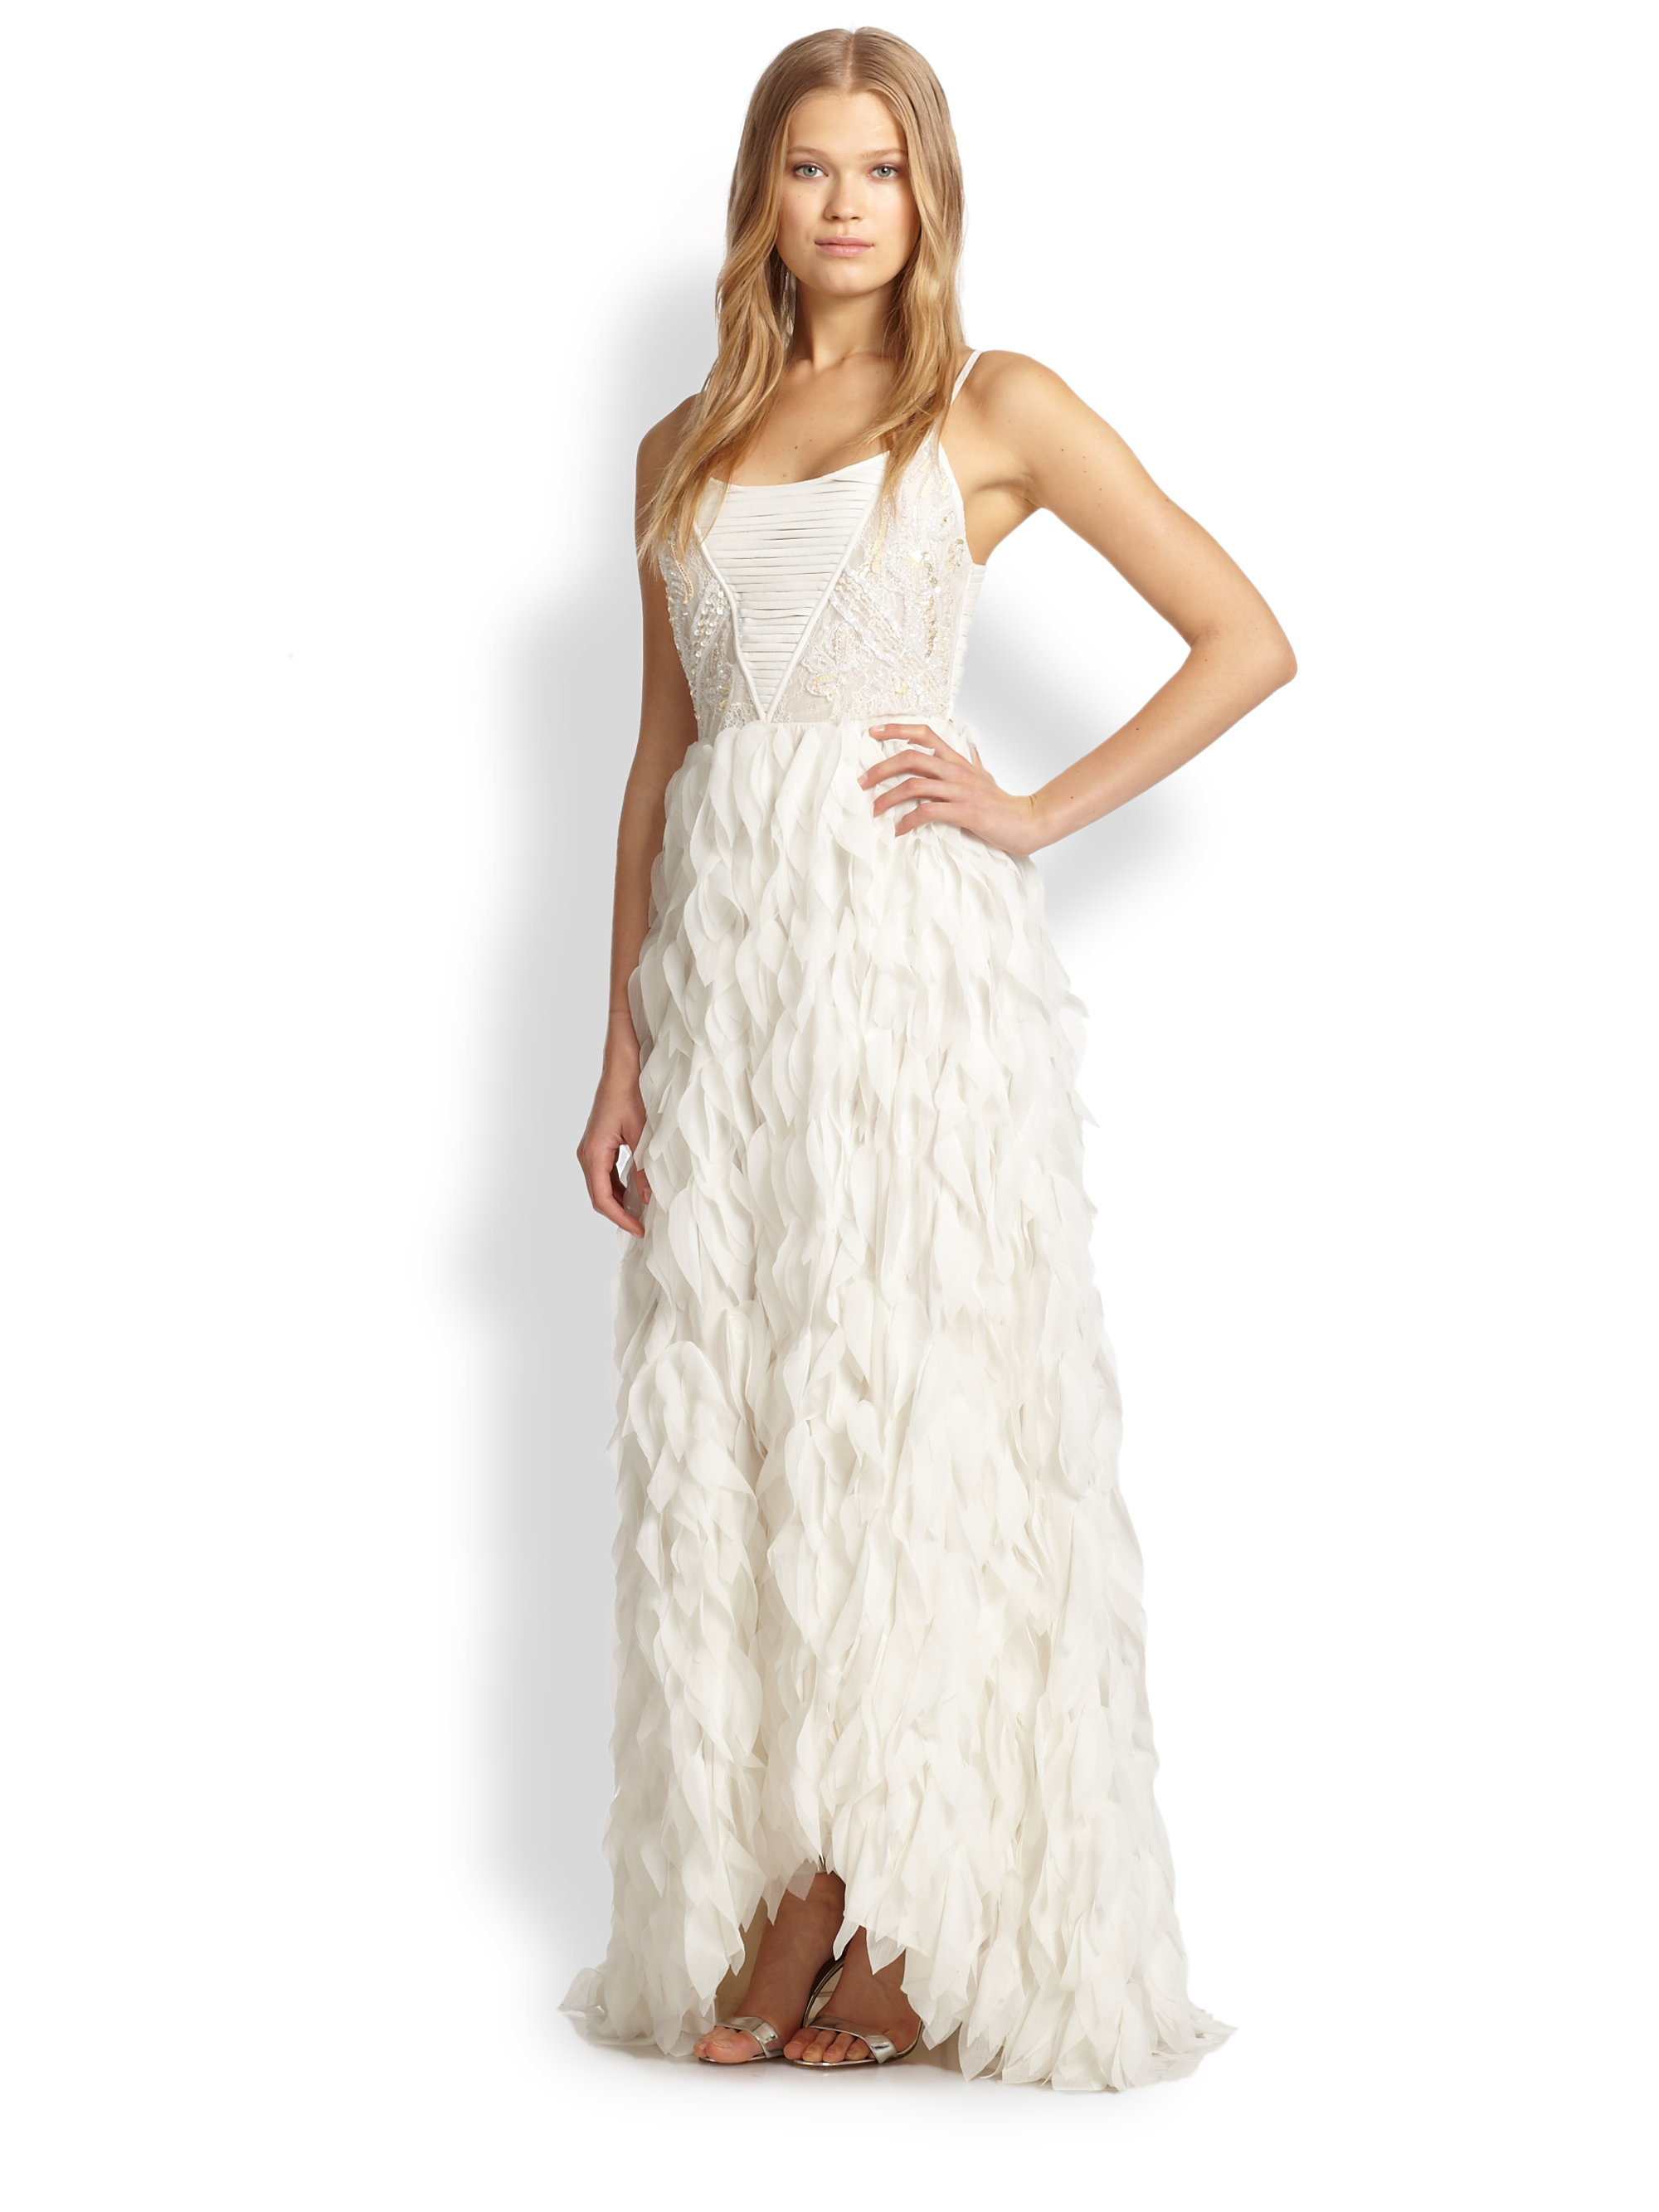 Lyst - Alice + Olivia Eaddy Embroidered Feather Gown in White